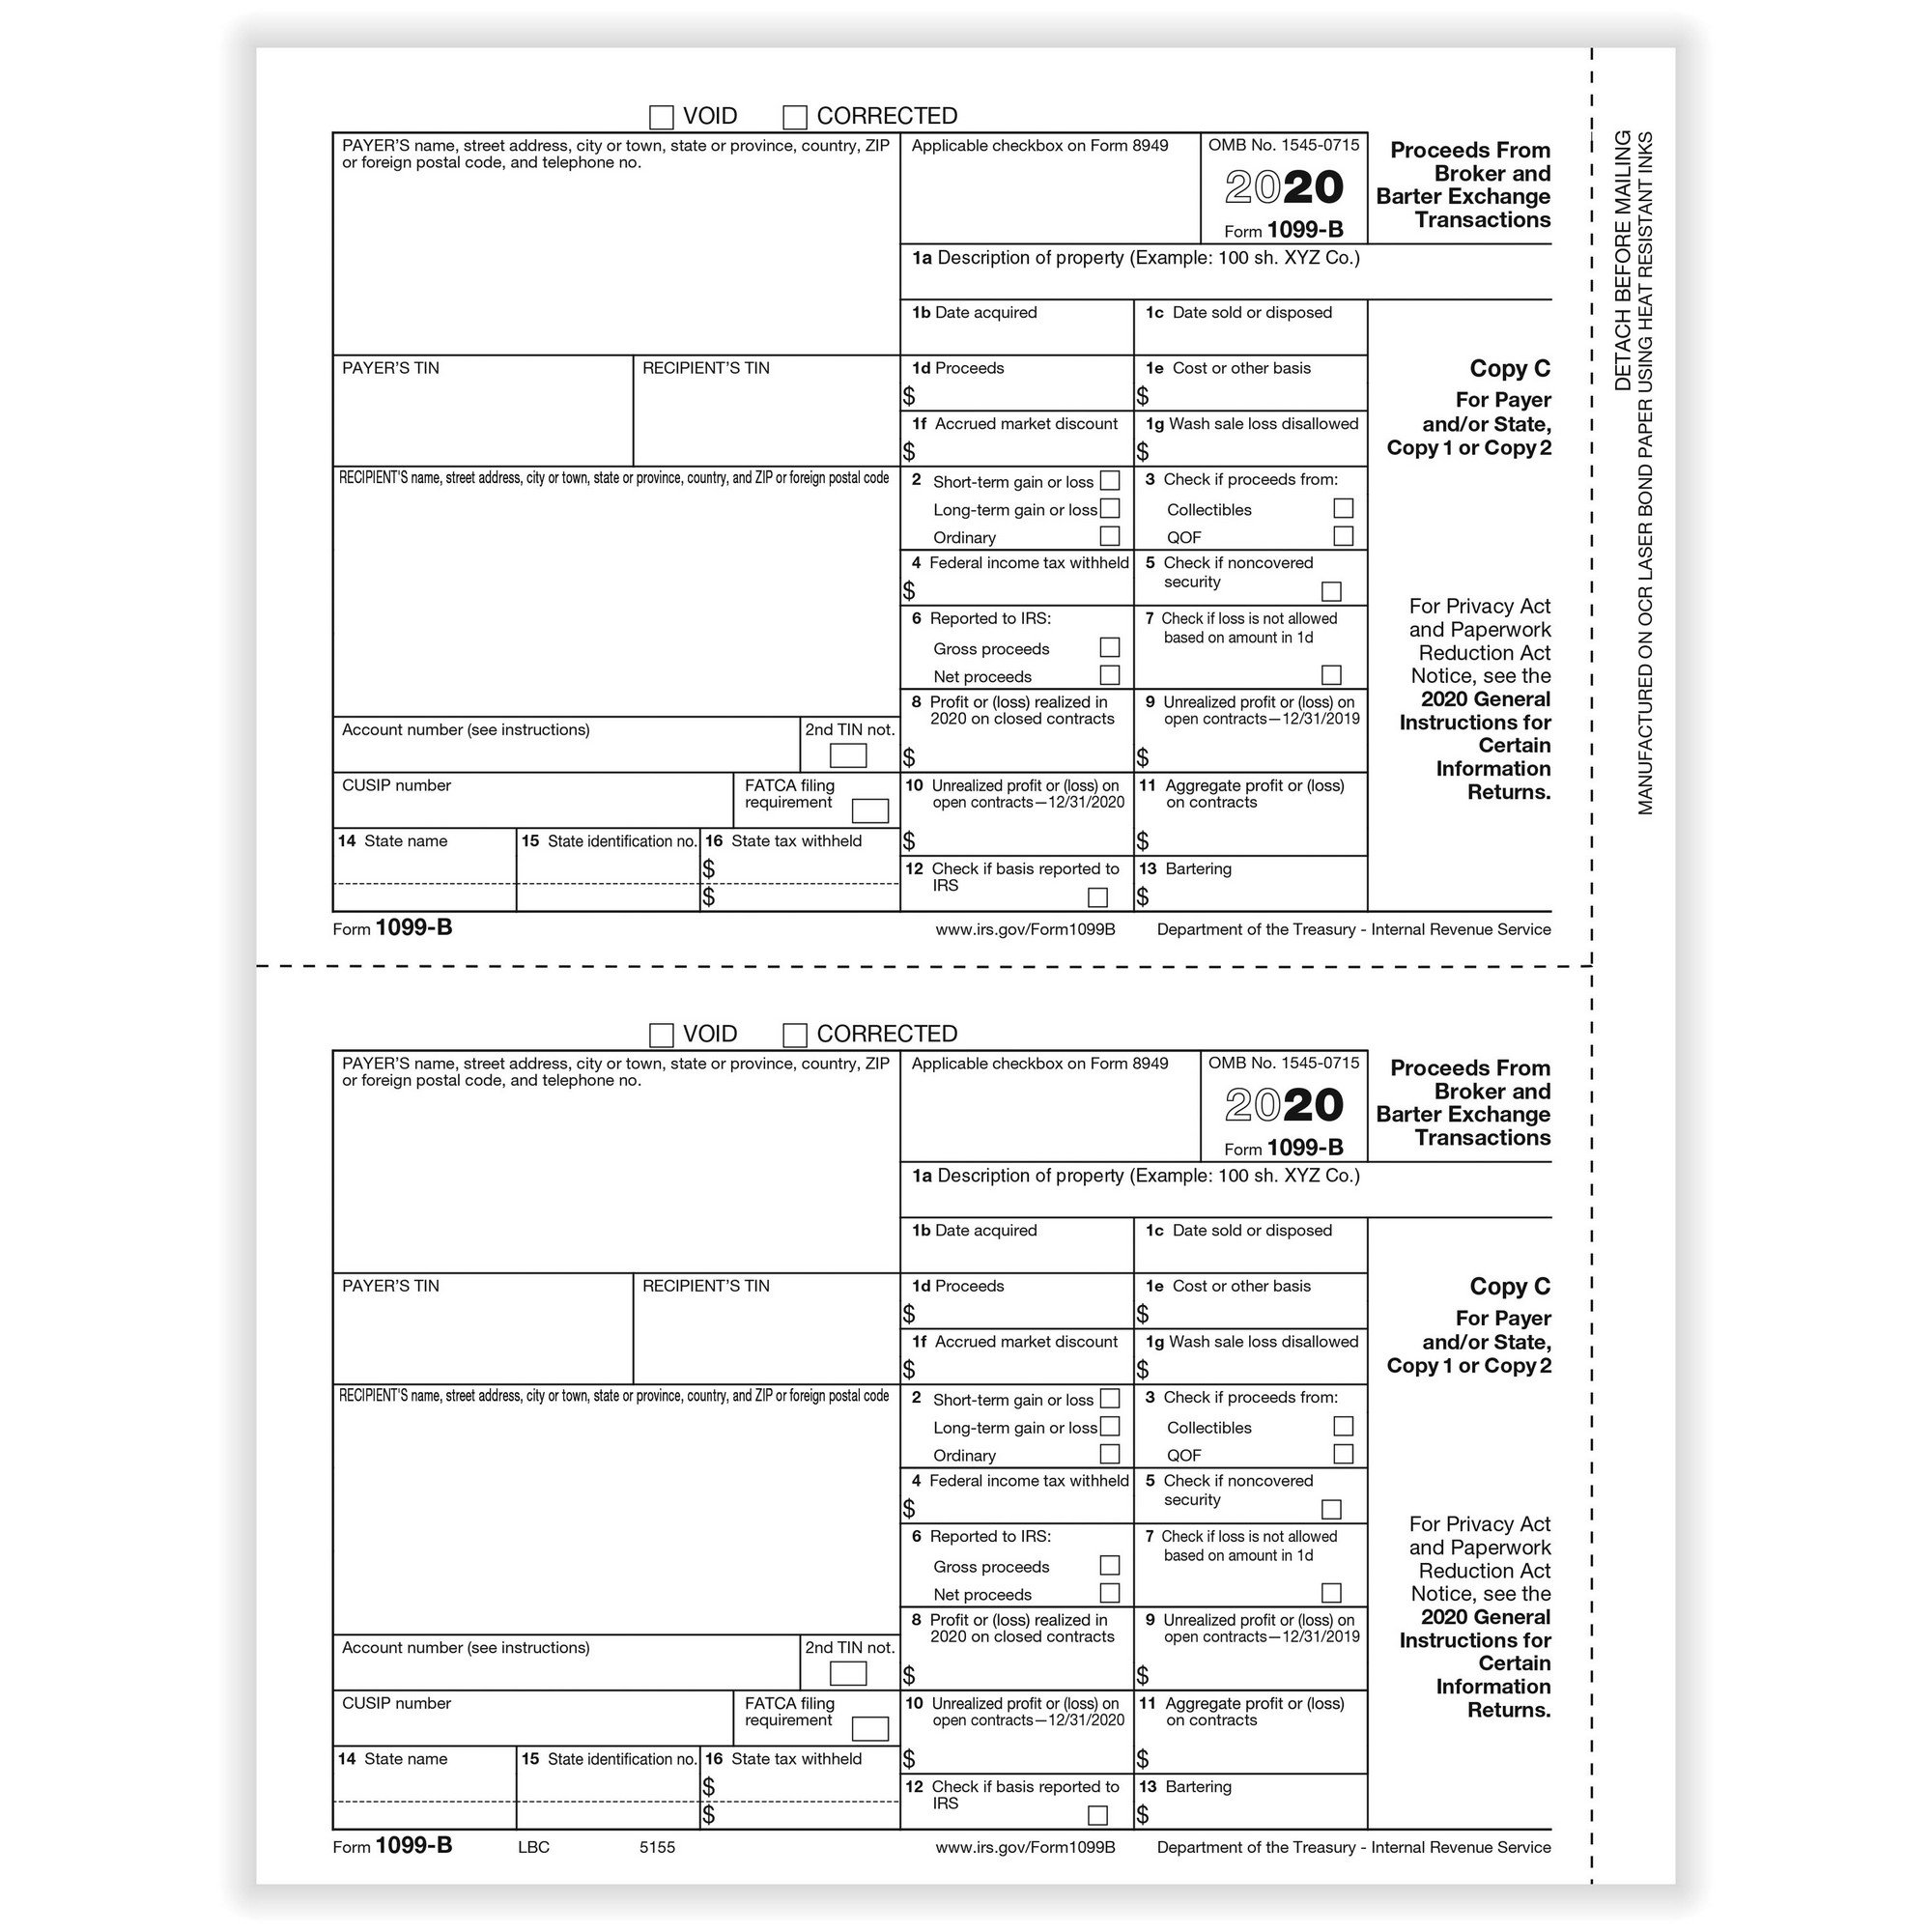 B Broker Payer Or State Copy C Cut Sheet 400 Forms